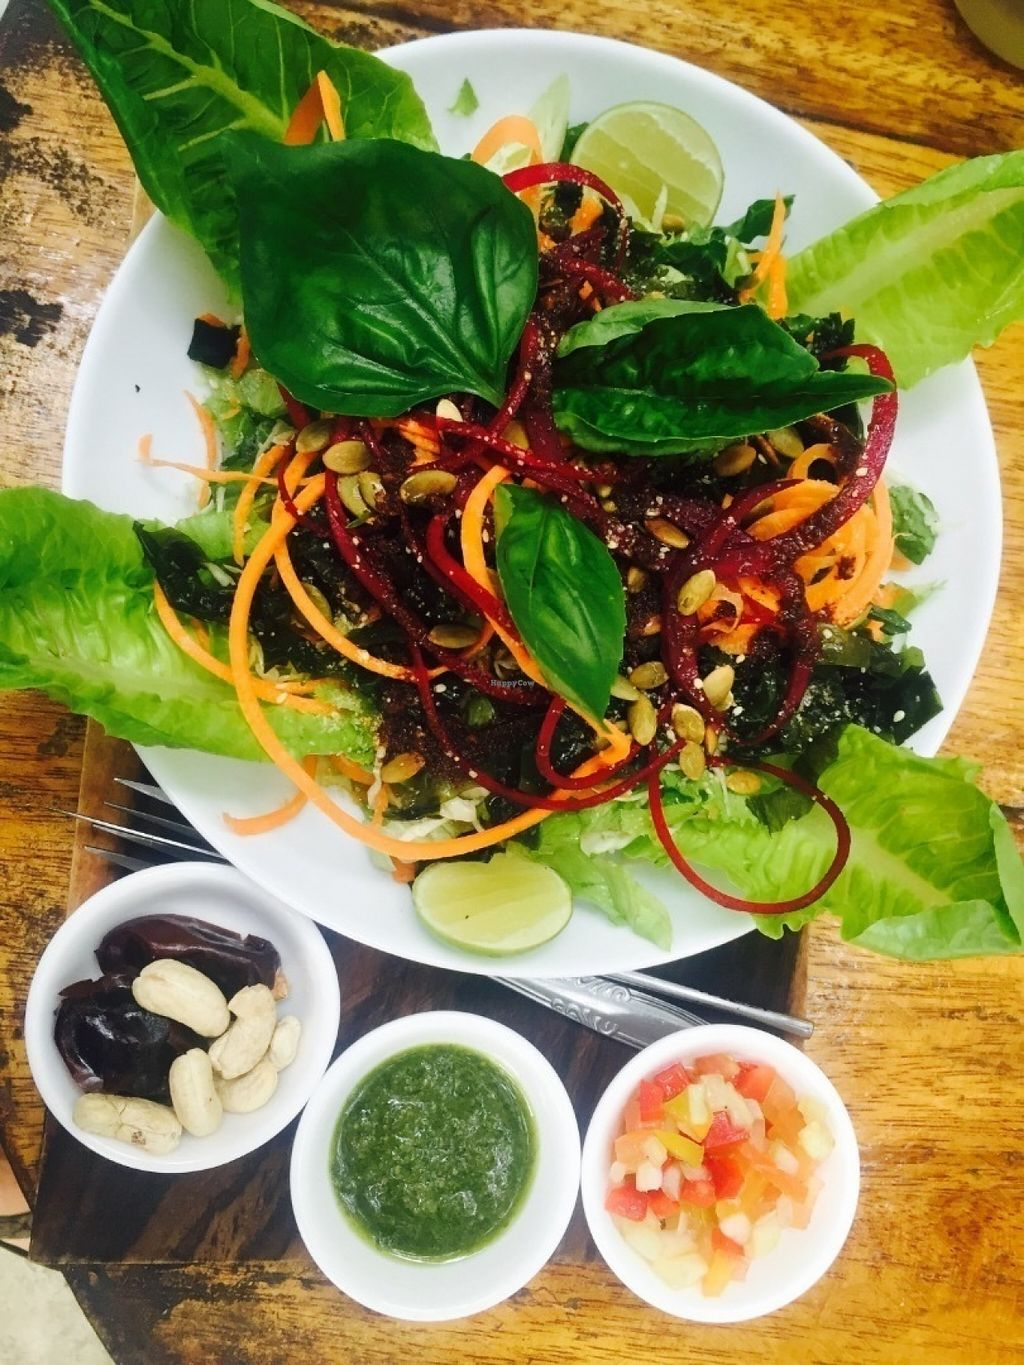 """Photo of Pachamama Organic  by <a href=""""/members/profile/rodgo"""">rodgo</a> <br/>Vegan salad <br/> July 17, 2016  - <a href='/contact/abuse/image/70951/160378'>Report</a>"""